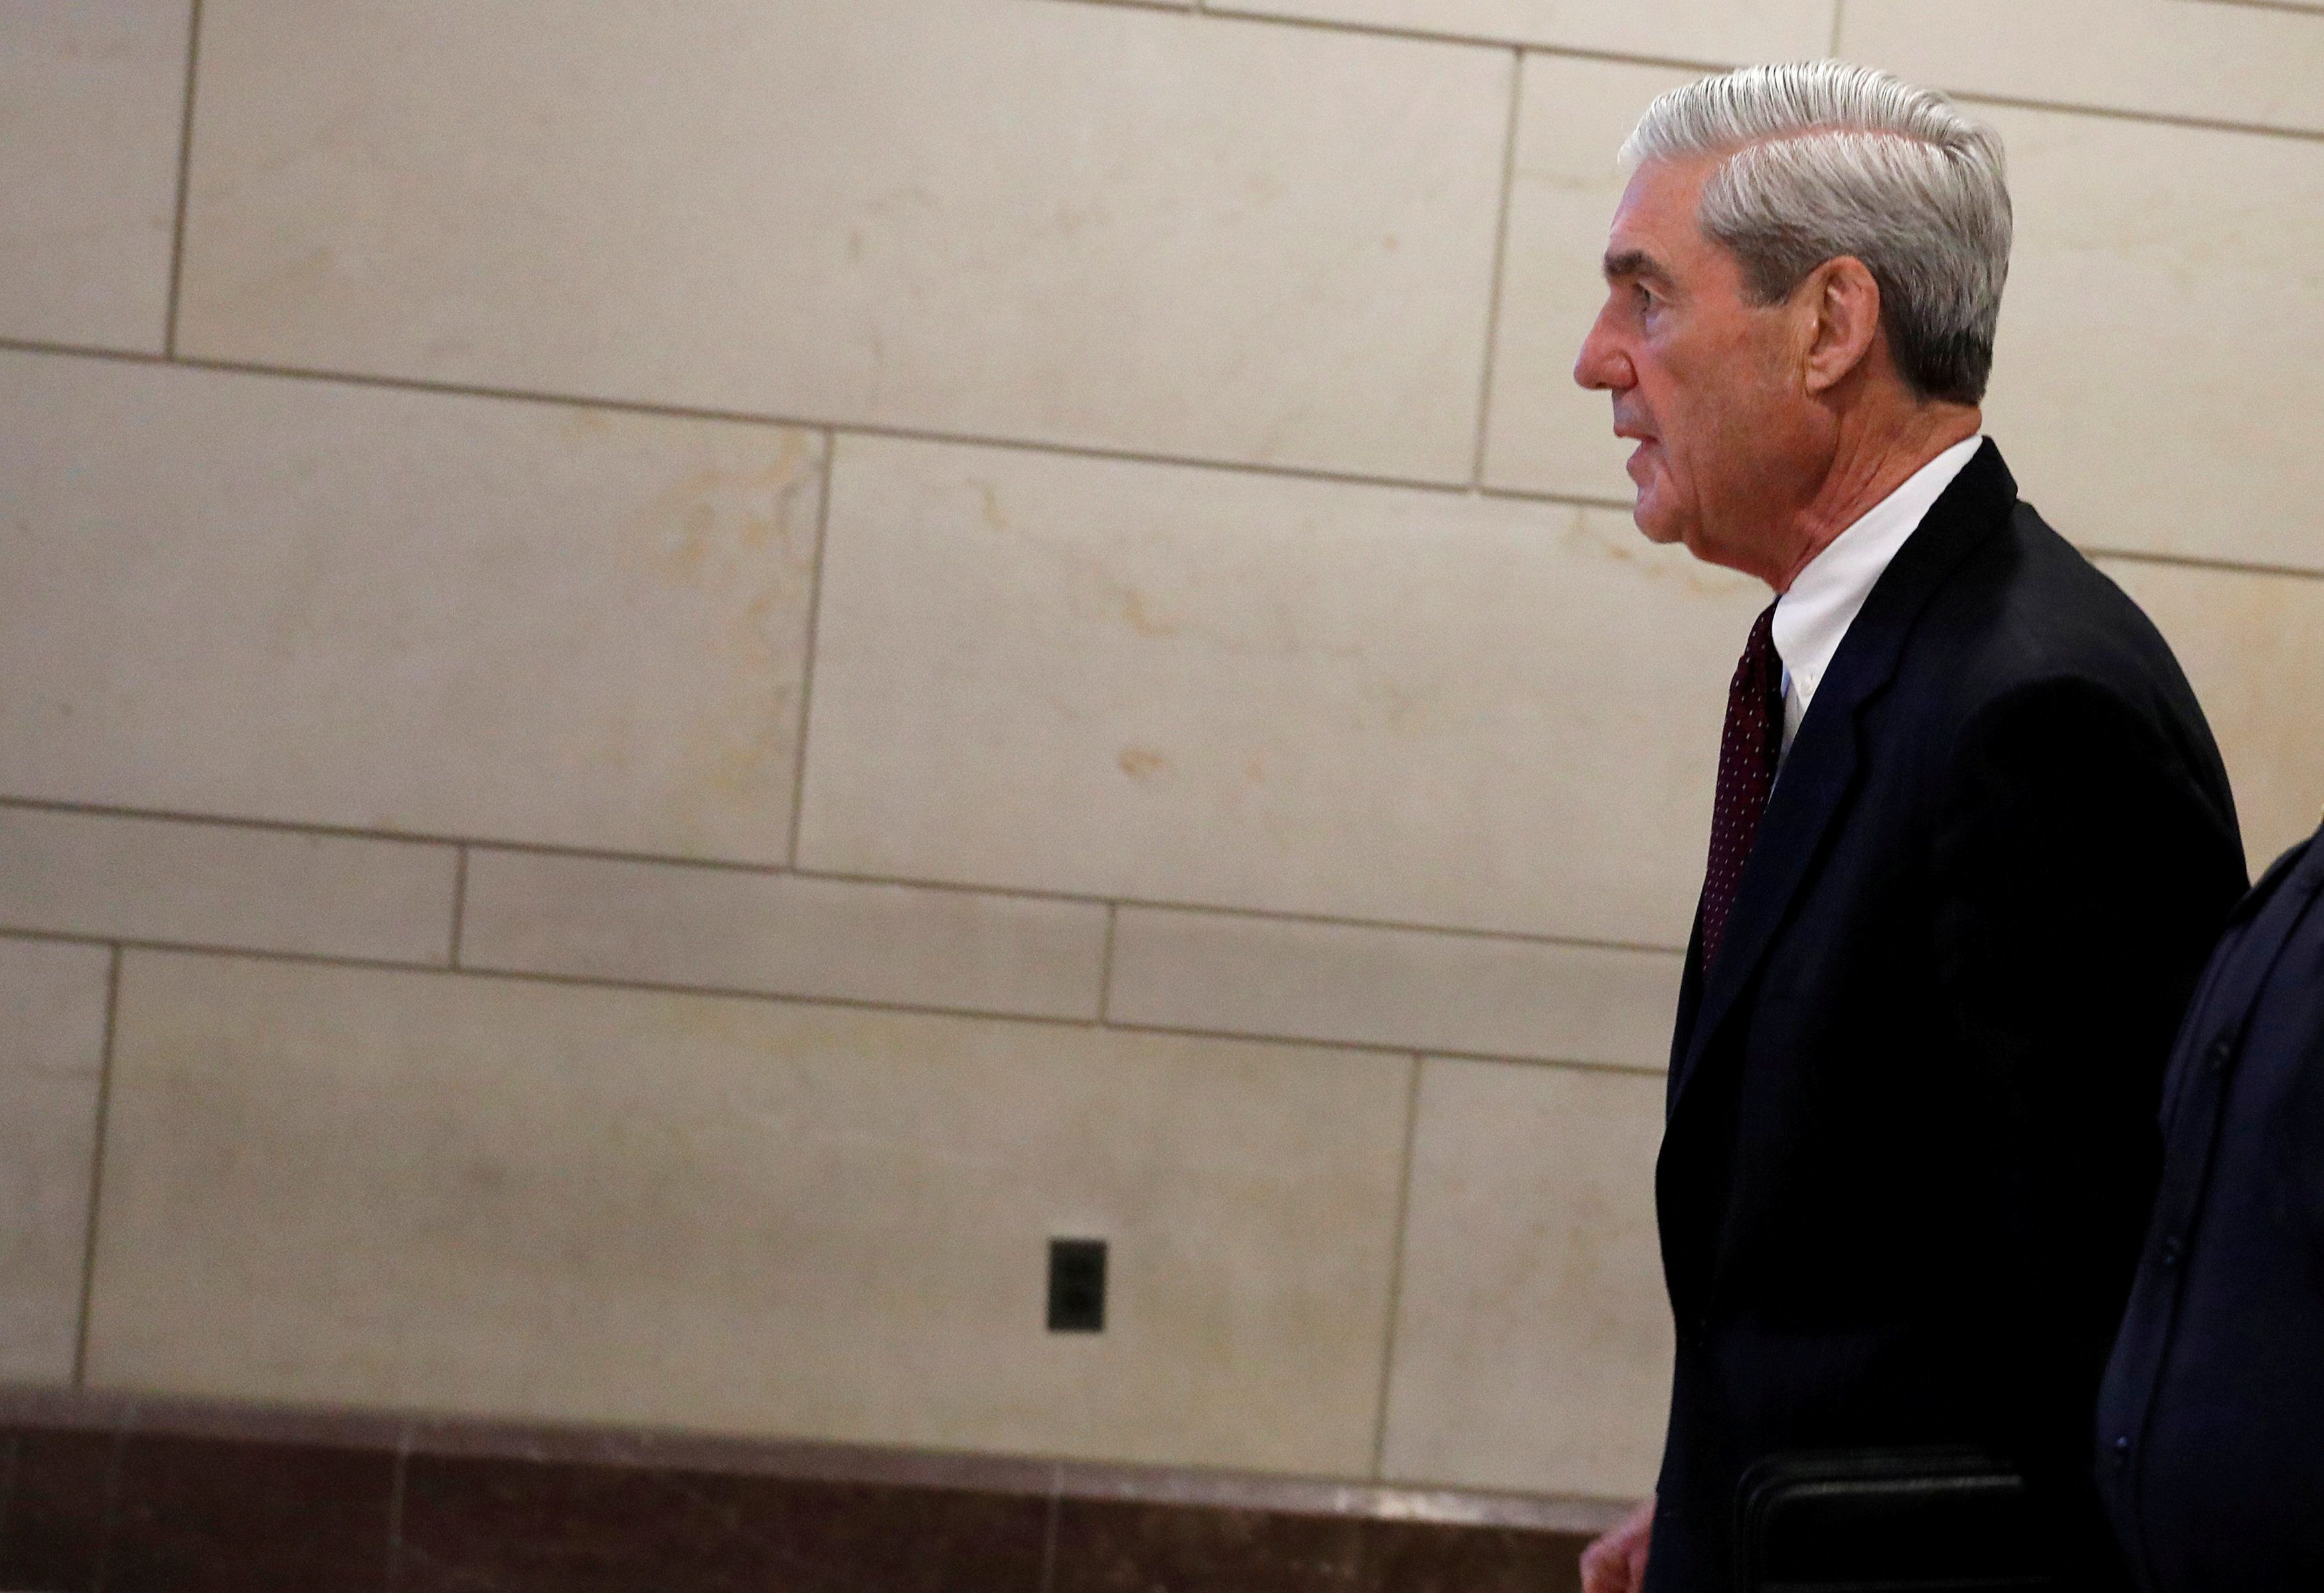 FILE PHOTO: Special Counsel Robert Mueller departs after briefing the U.S. House Intelligence Committee on his investigation of potential collusion between Russia and the Trump campaign on Capitol Hill in Washington, U.S., June 20, 2017. REUTERS/Aaron P. Bernstein/File Photo